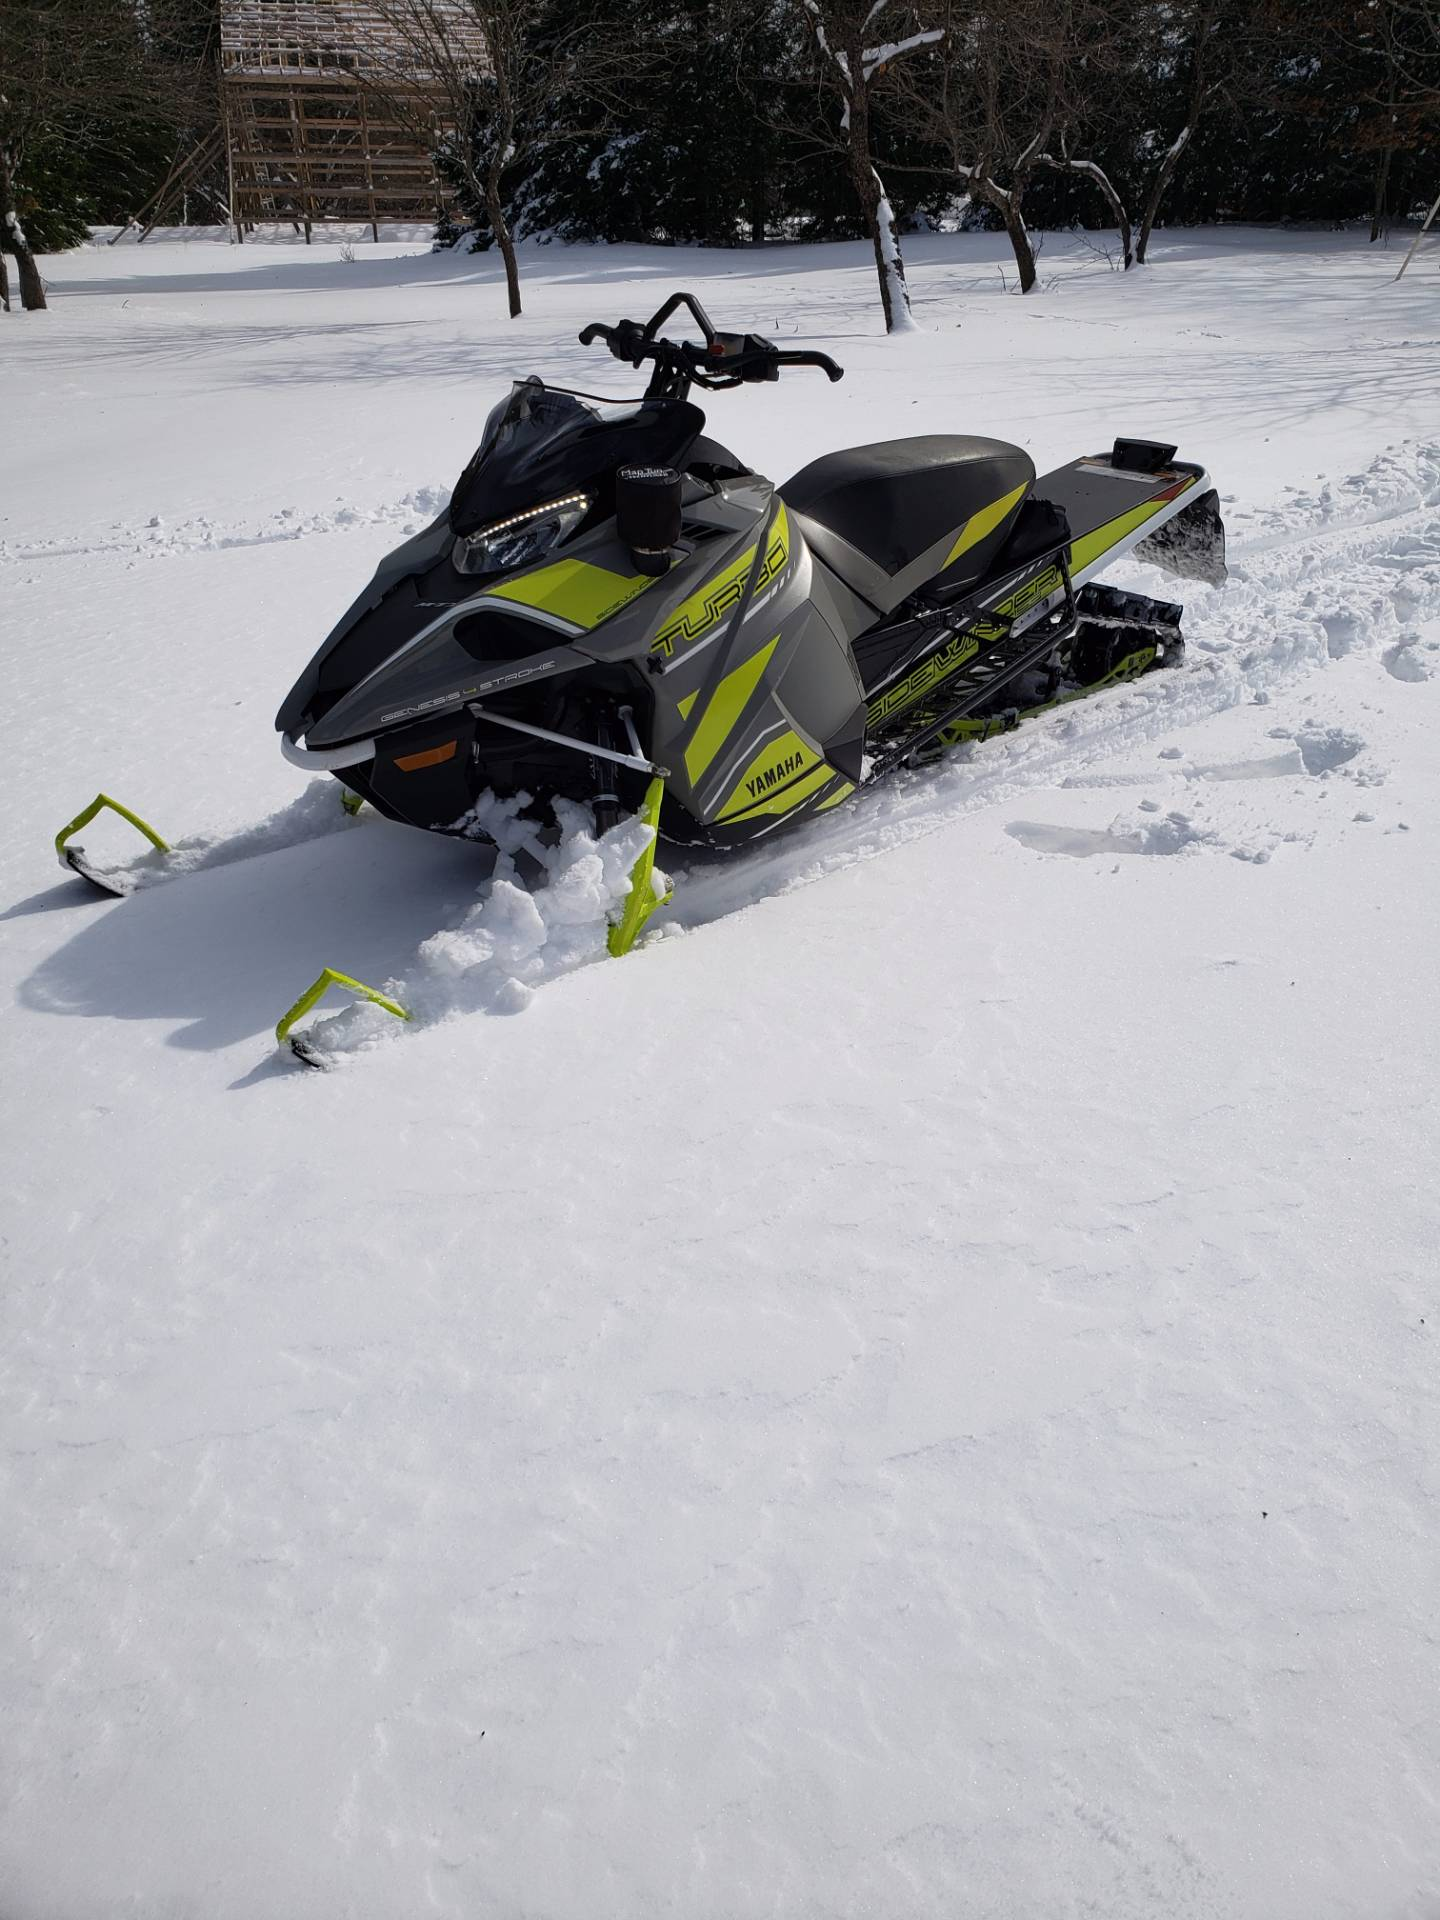 2018 Yamaha MTX SE 153 in Greenland, Michigan - Photo 3